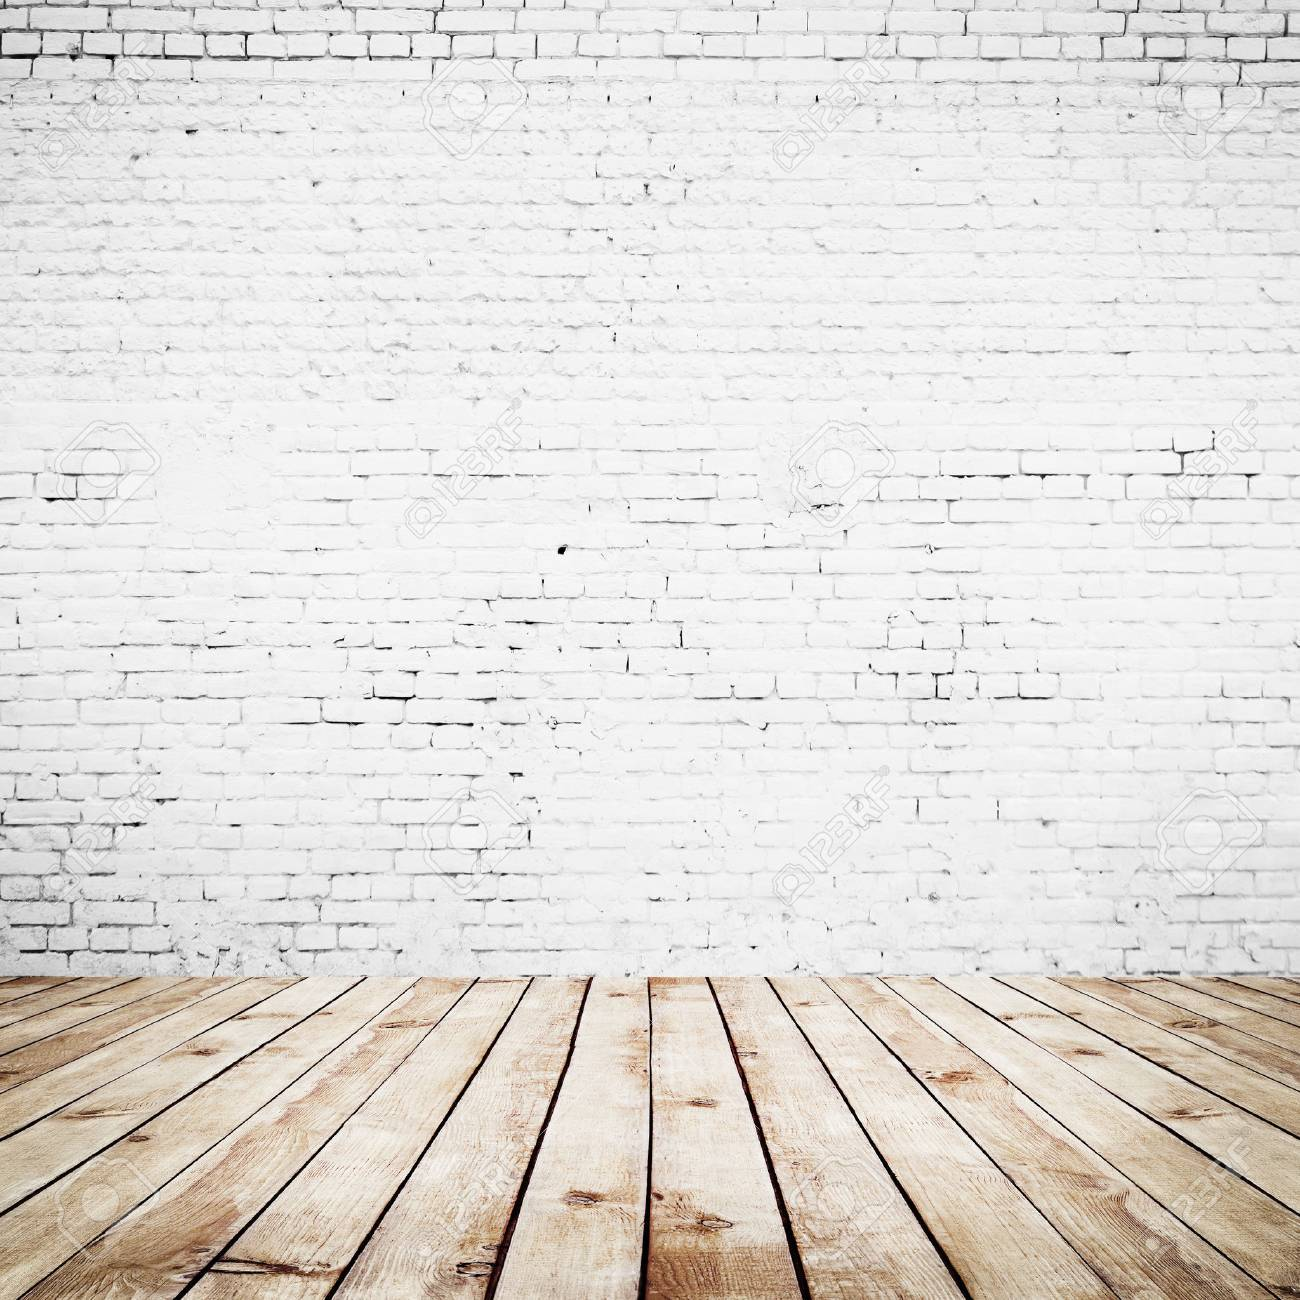 Room Interior Vintage With White Brick Wall And Wood Floor Background Stock Photo Picture And Royalty Free Image Image 35585465